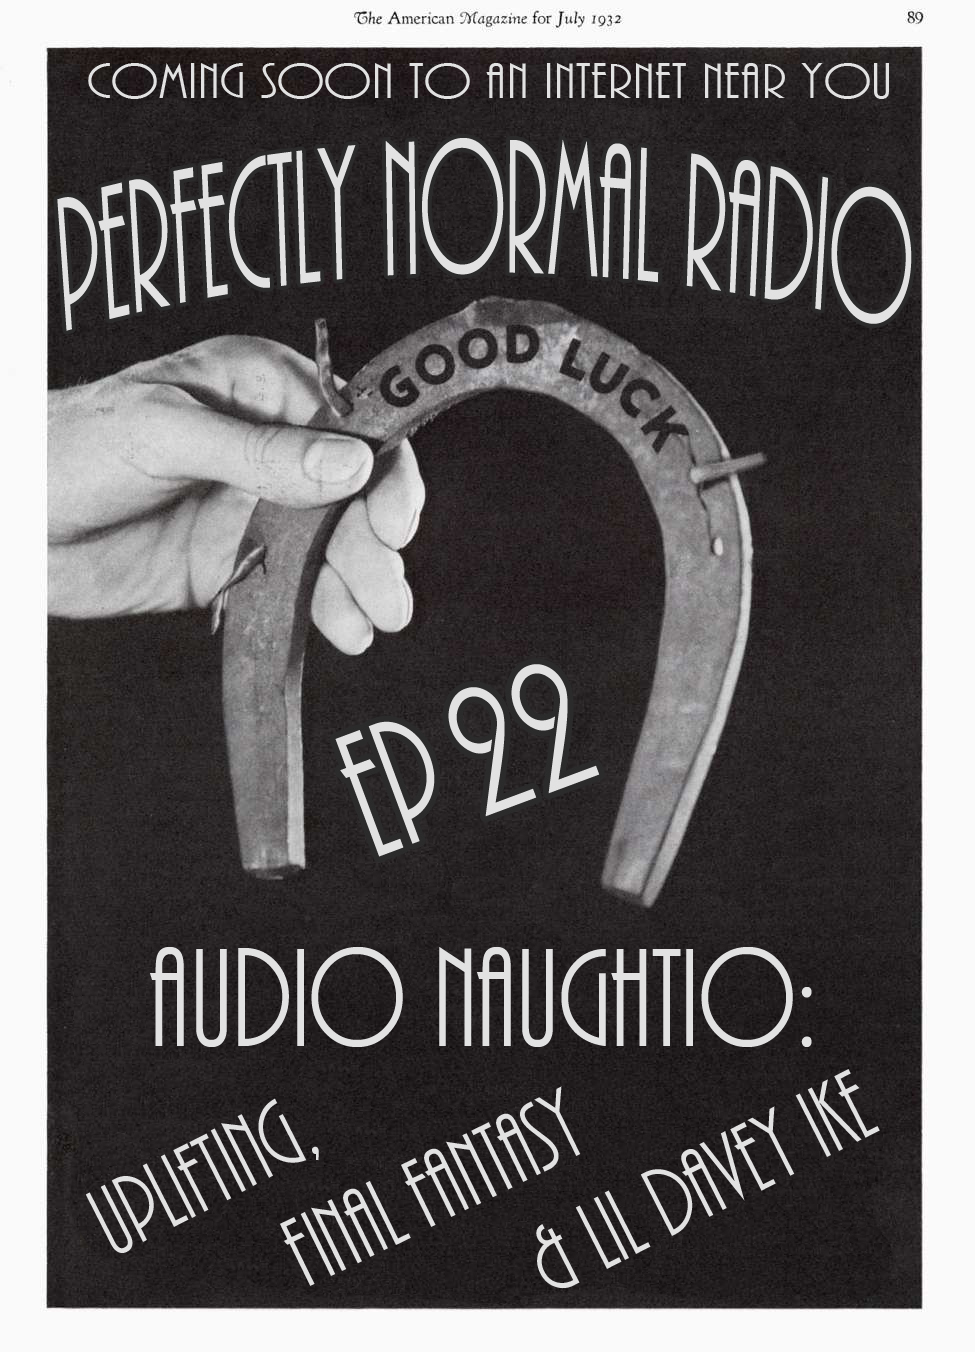 Audio Naughtio Poster.jpg